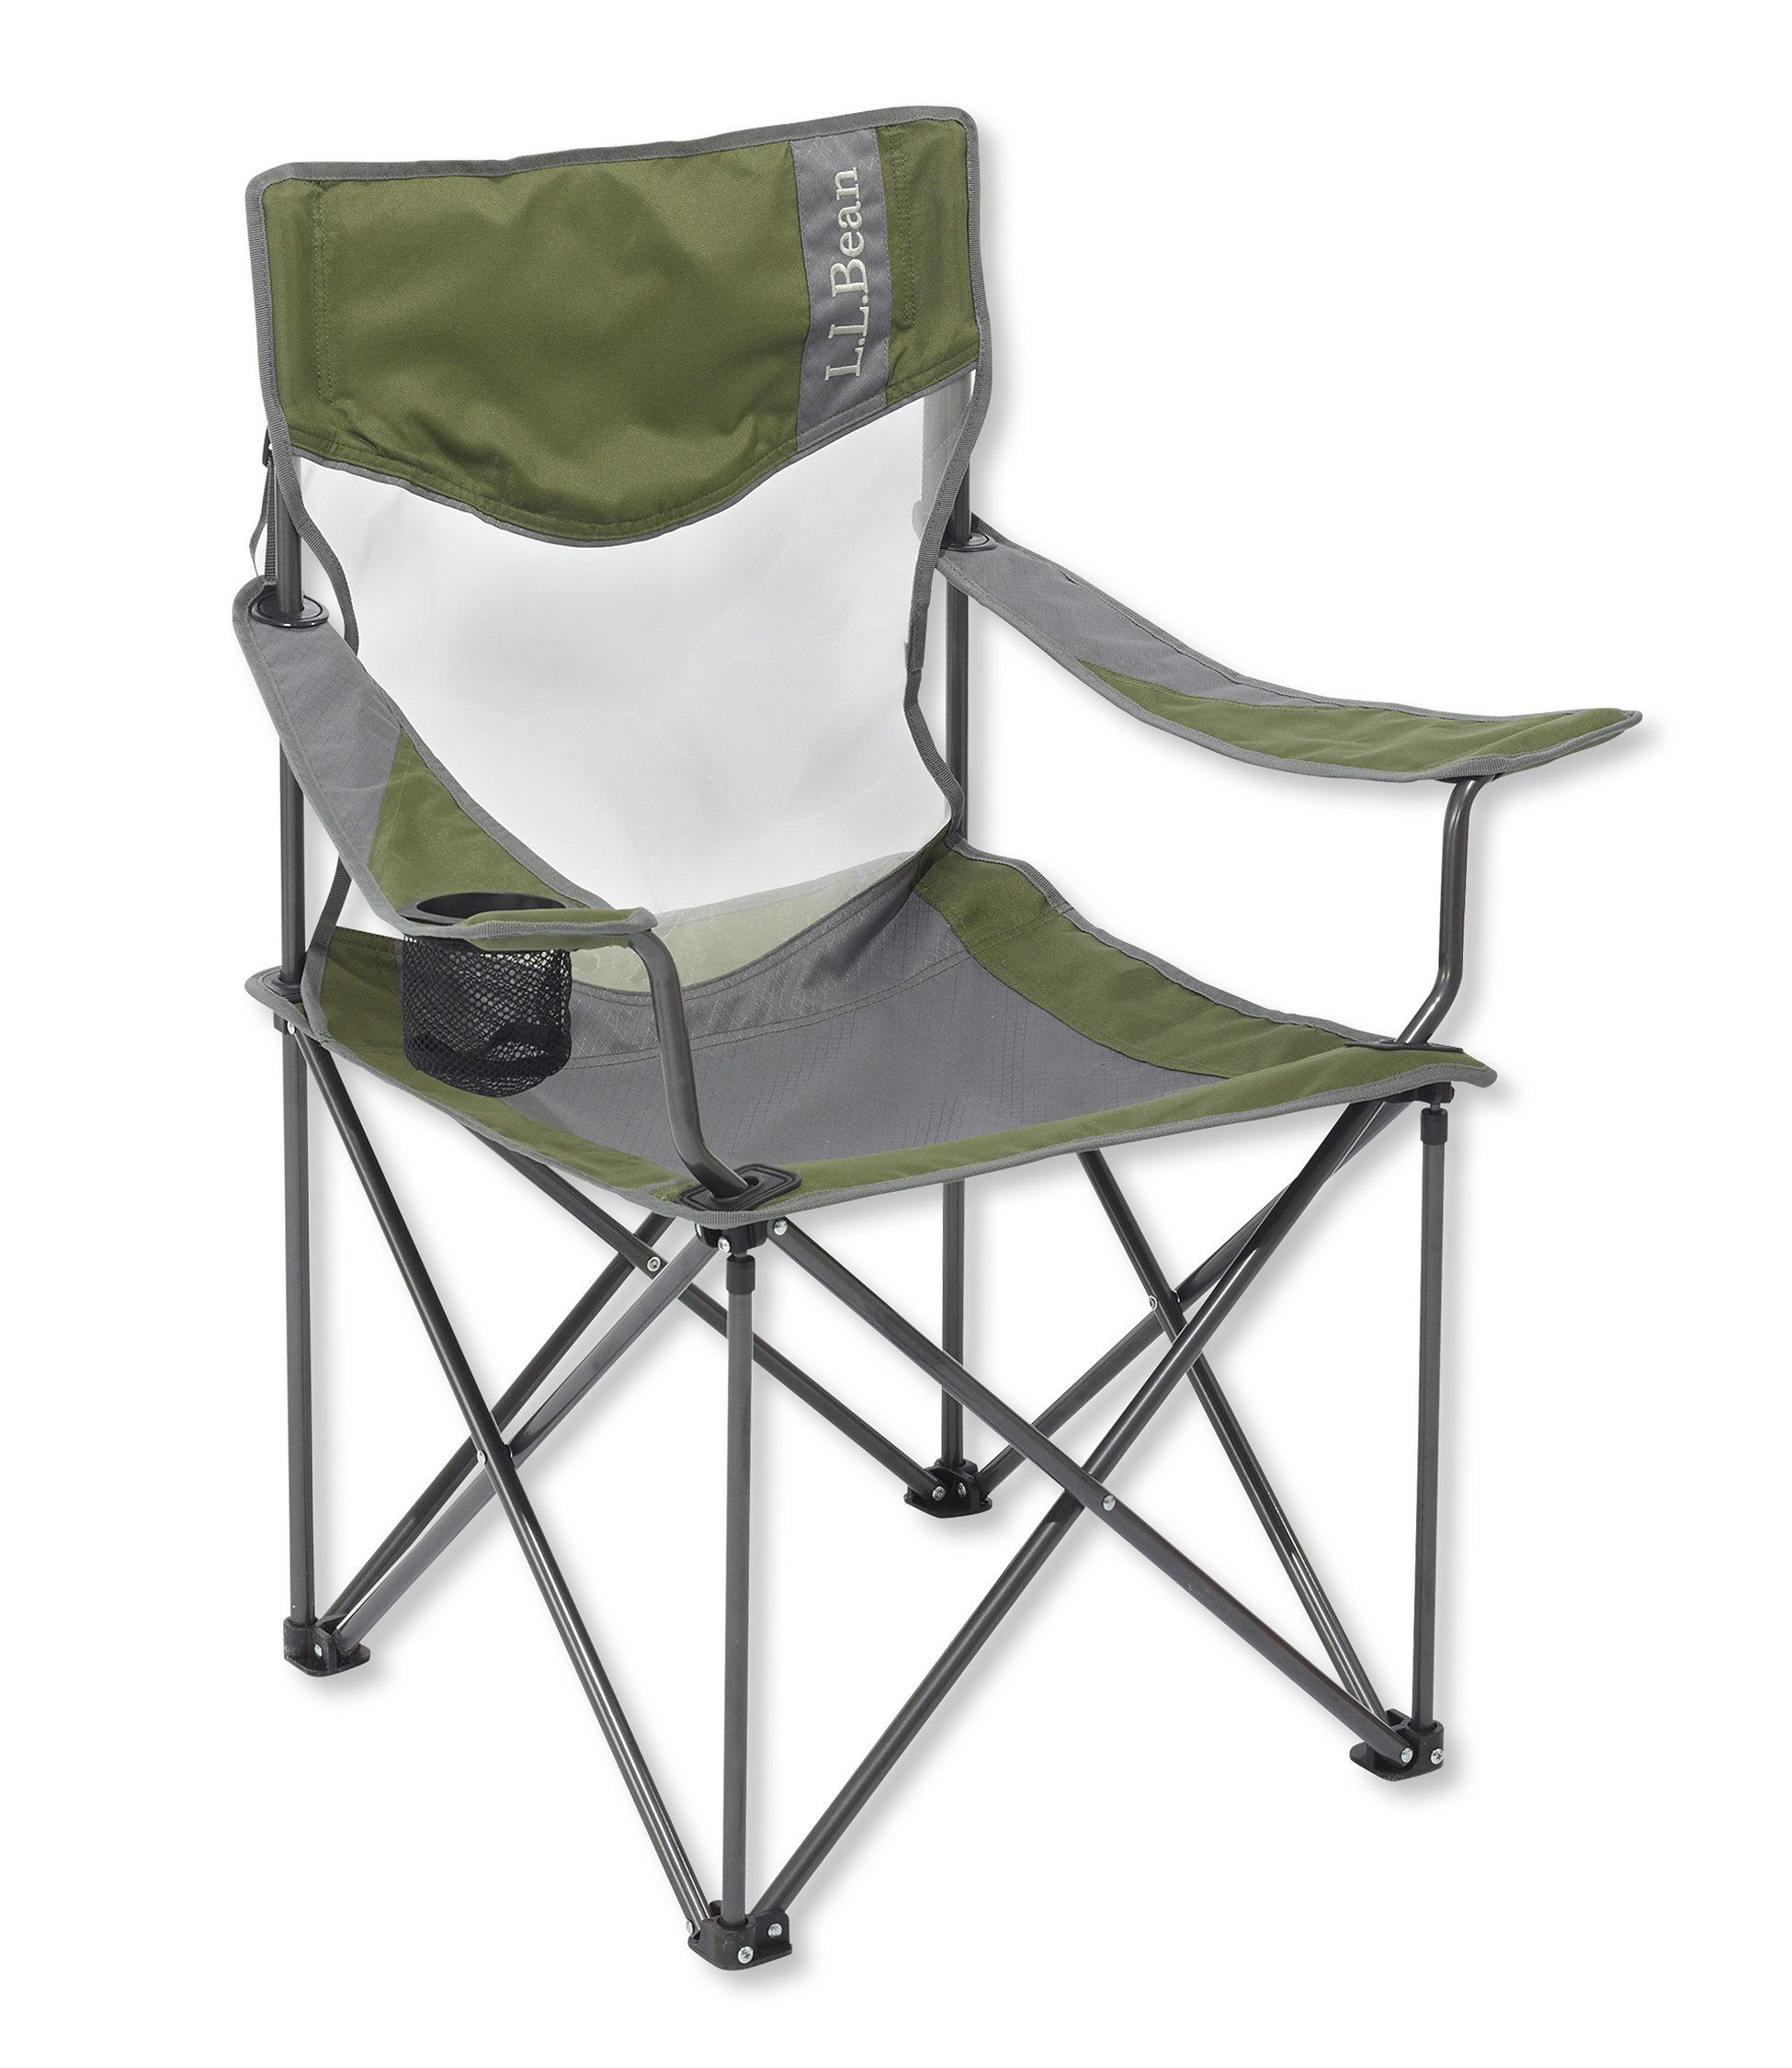 L.L.Bean Base Camp Chair Camping chairs, Butterfly chair